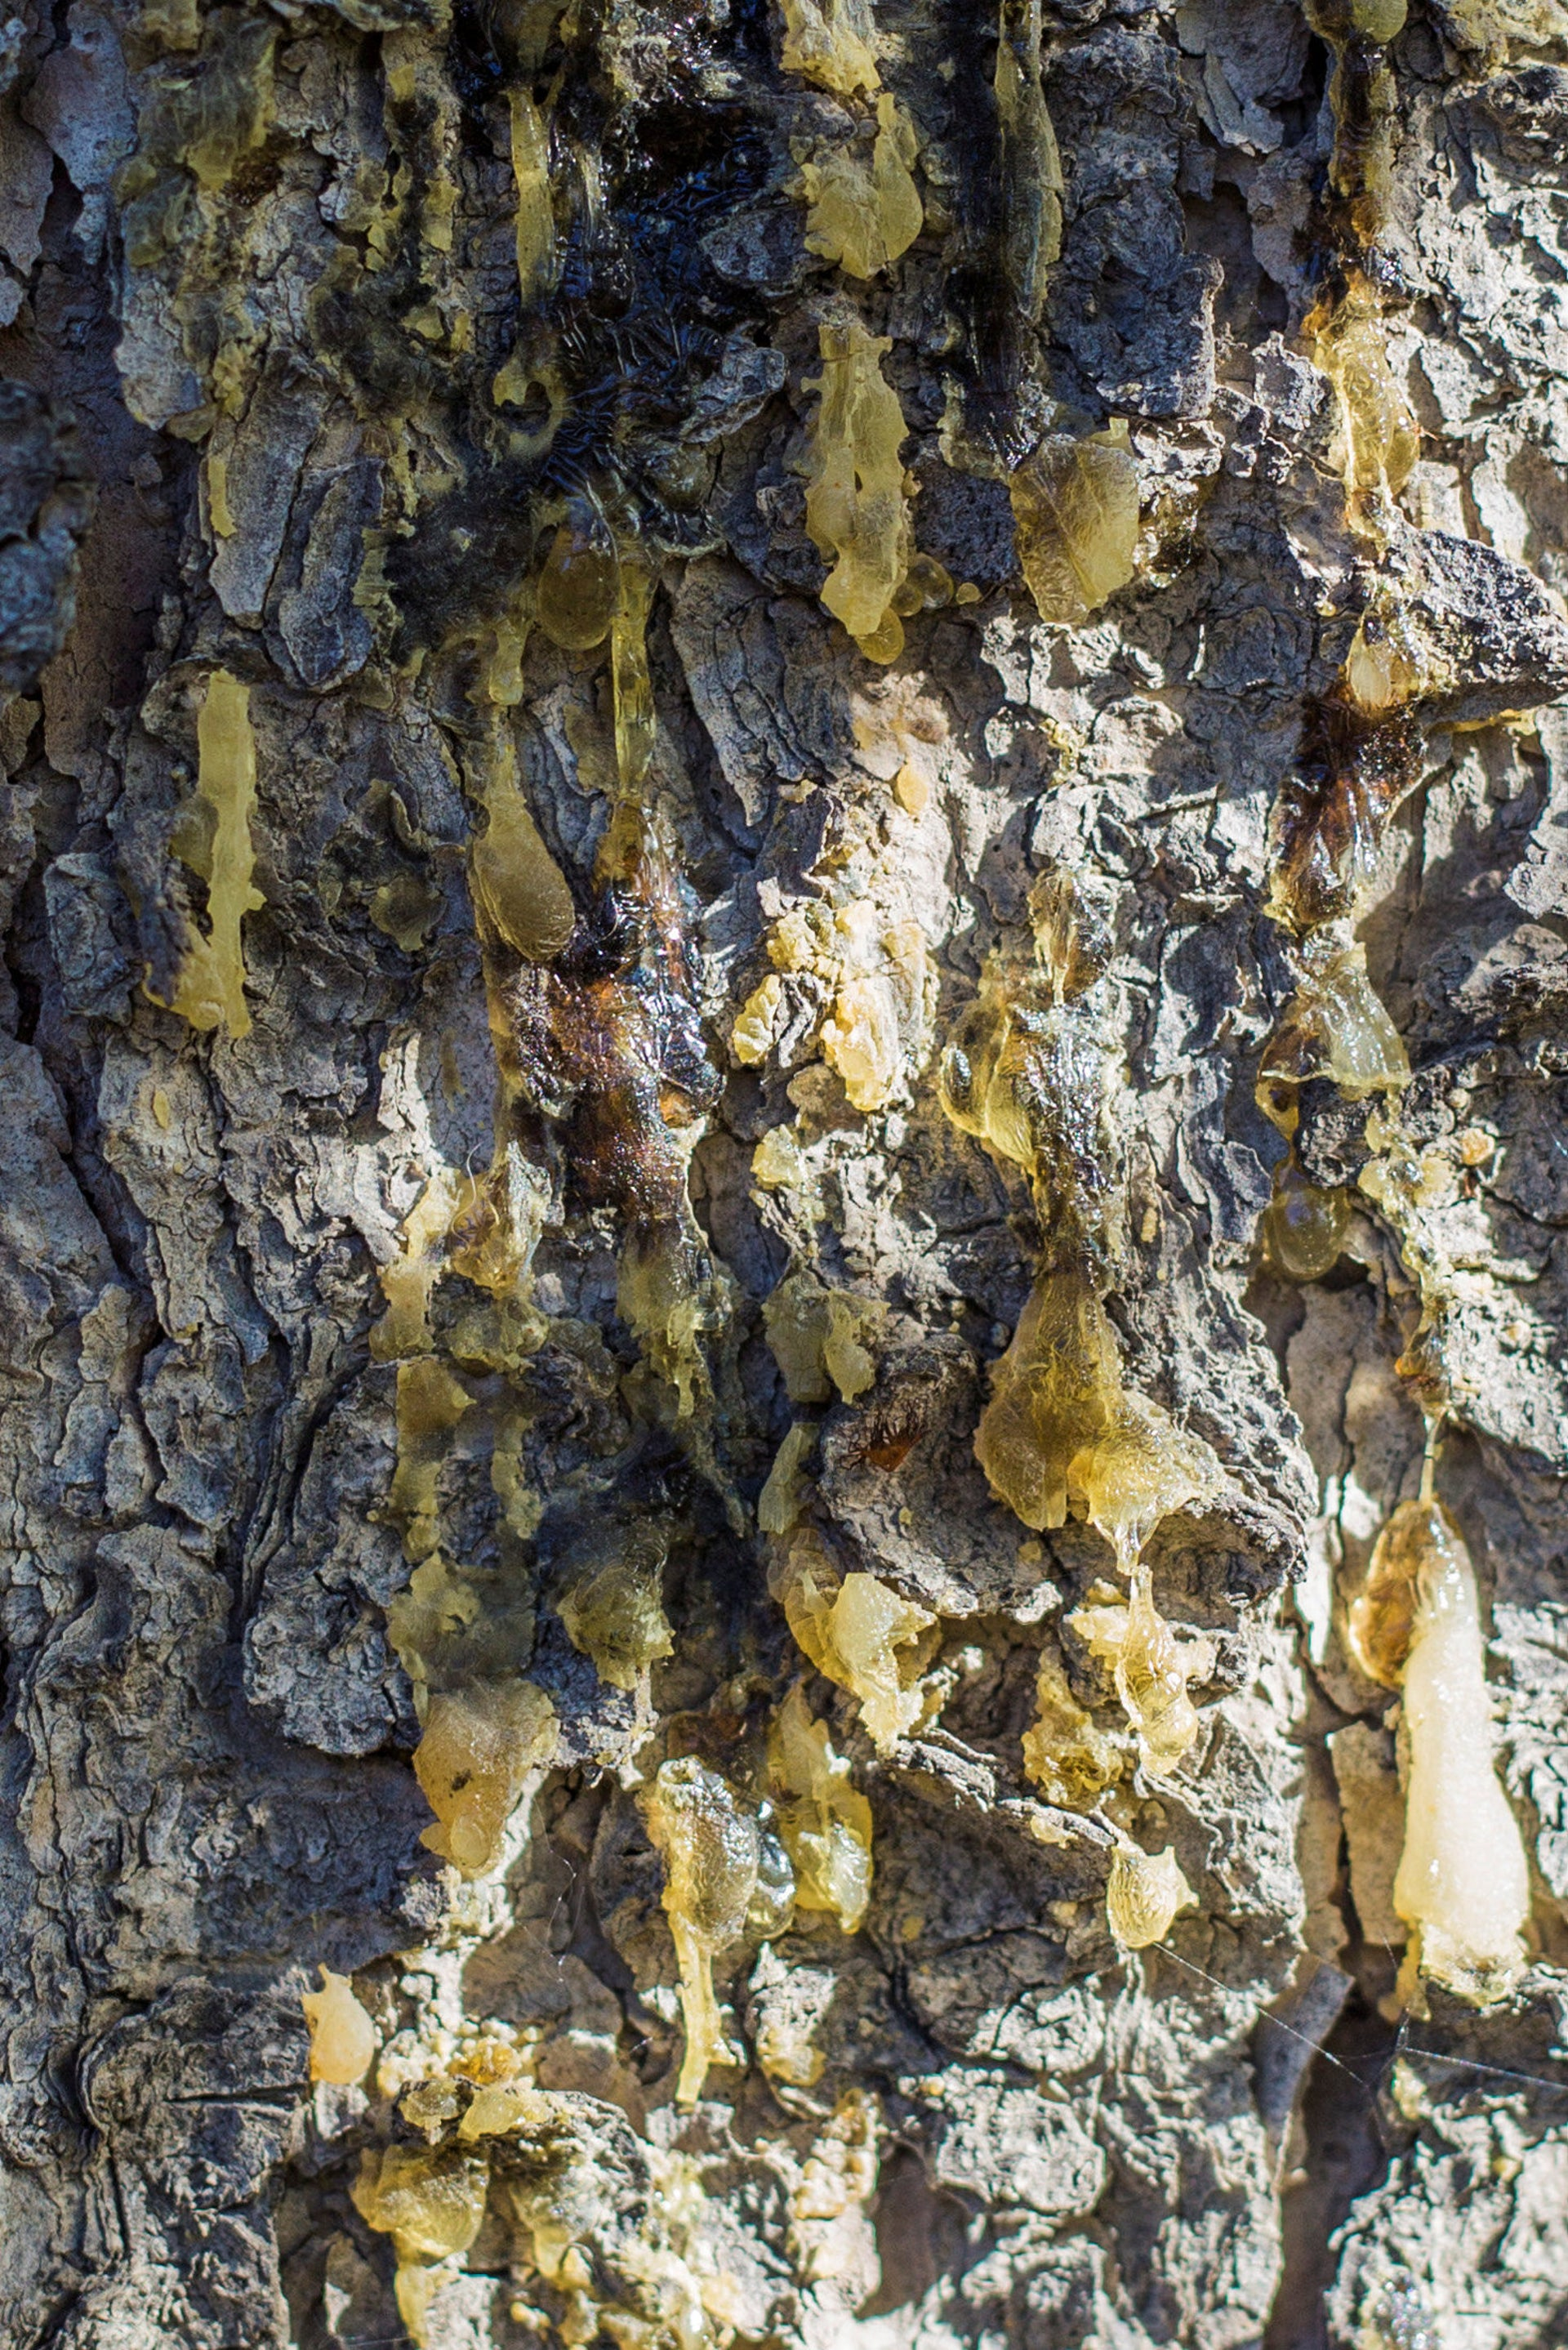 Resin seeping from pine tree